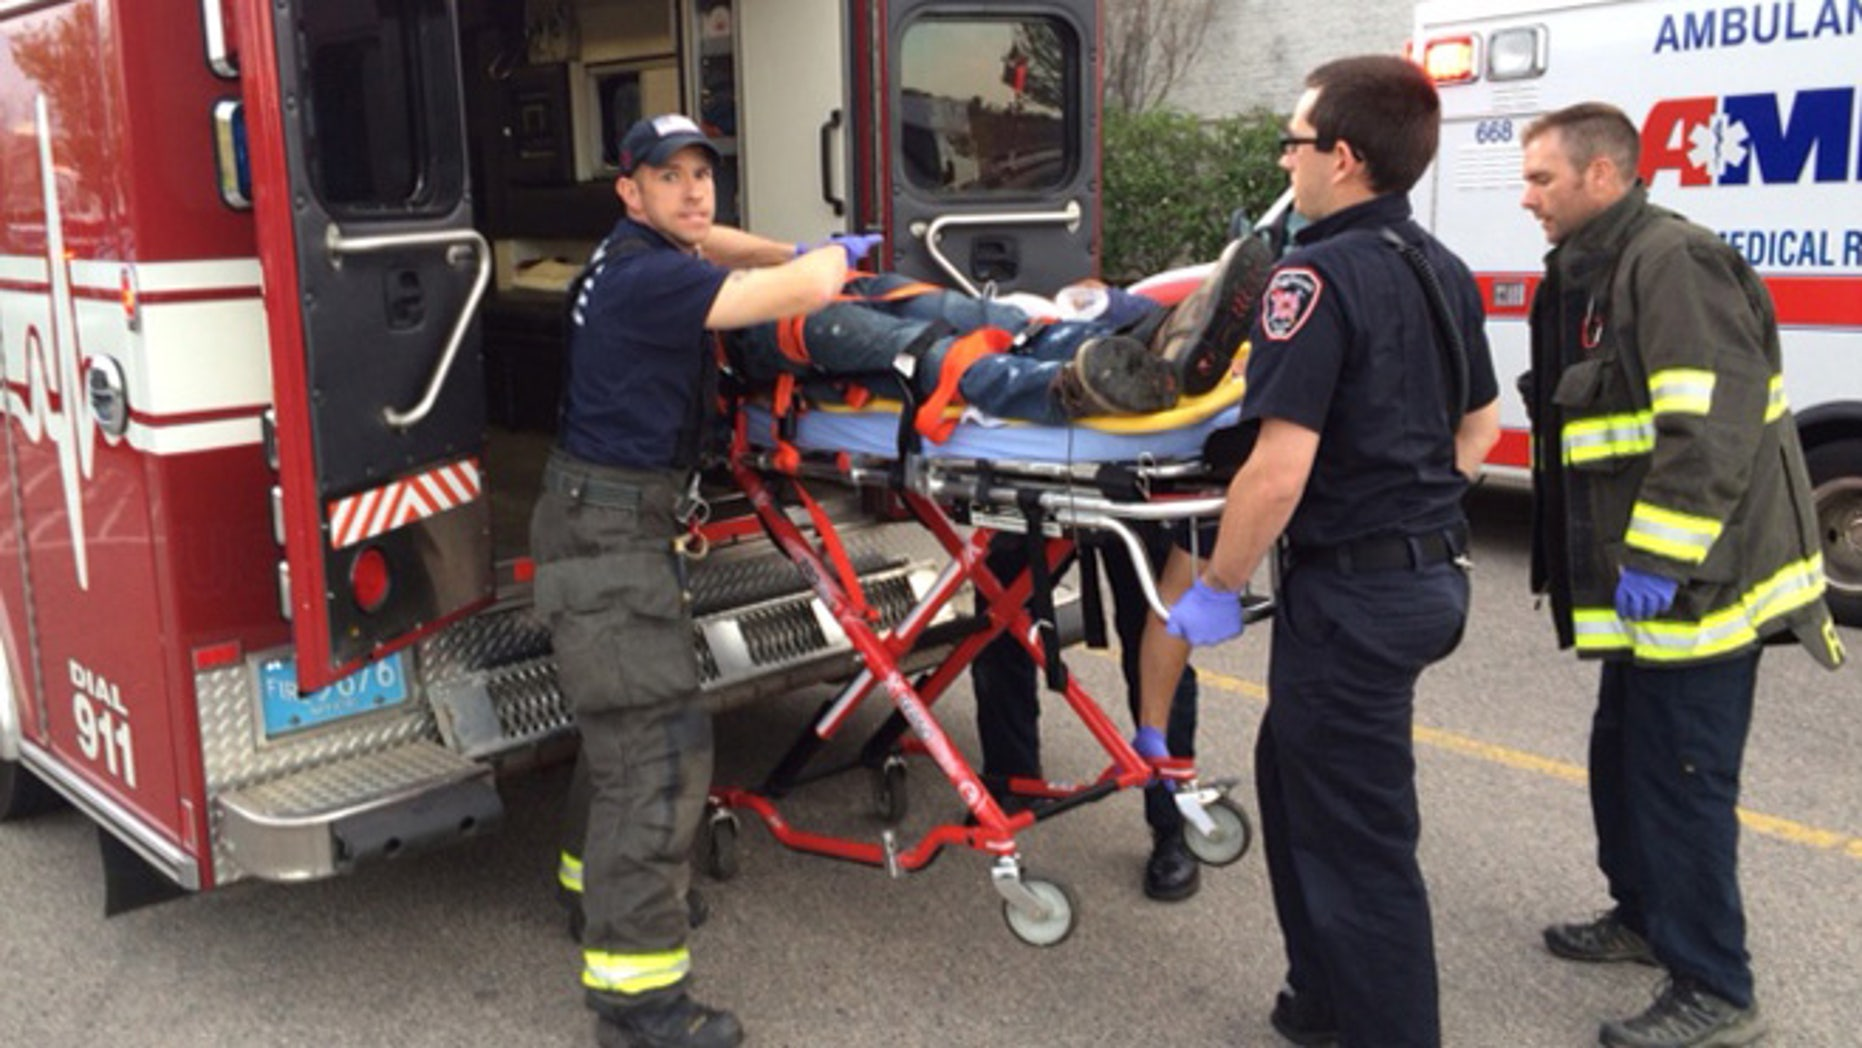 The suspect is transported on a gurney into an ambulance in Taunton, Mass., Tuesday, May 10, 2016.